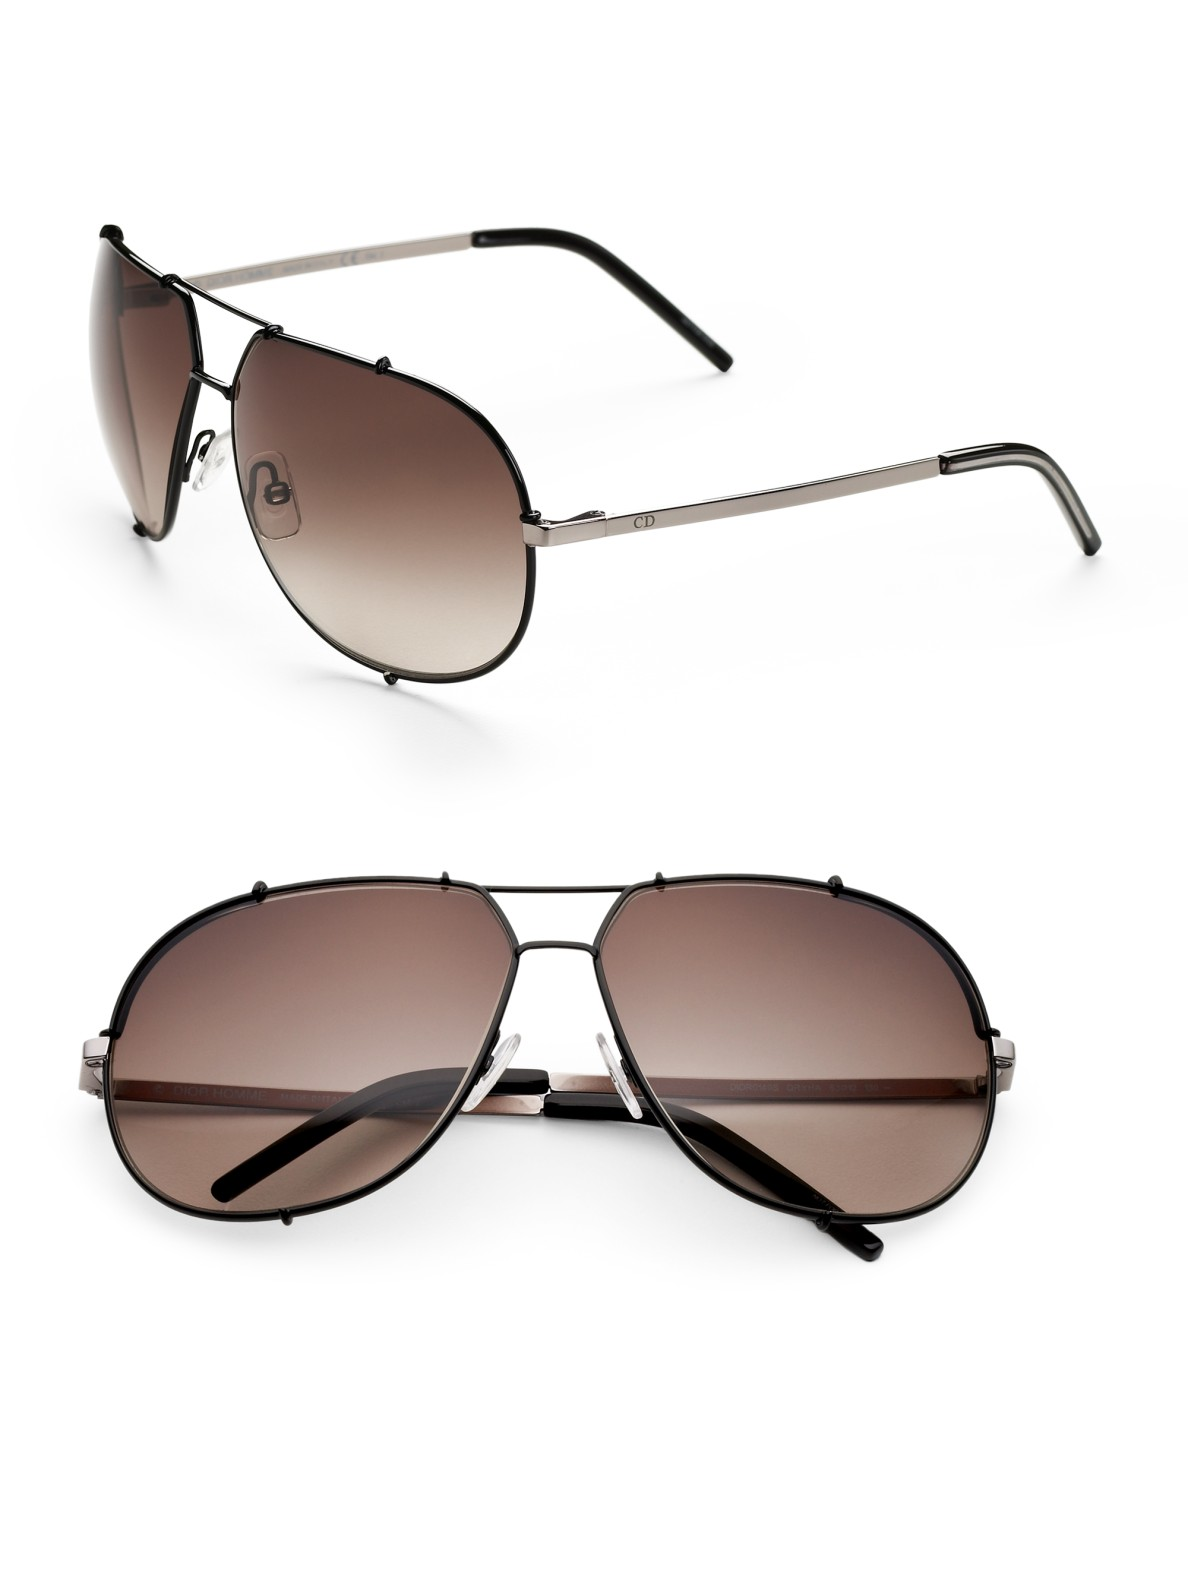 781a0e6cdf Lyst - Dior Homme Metal Aviator Sunglasses in Brown for Men